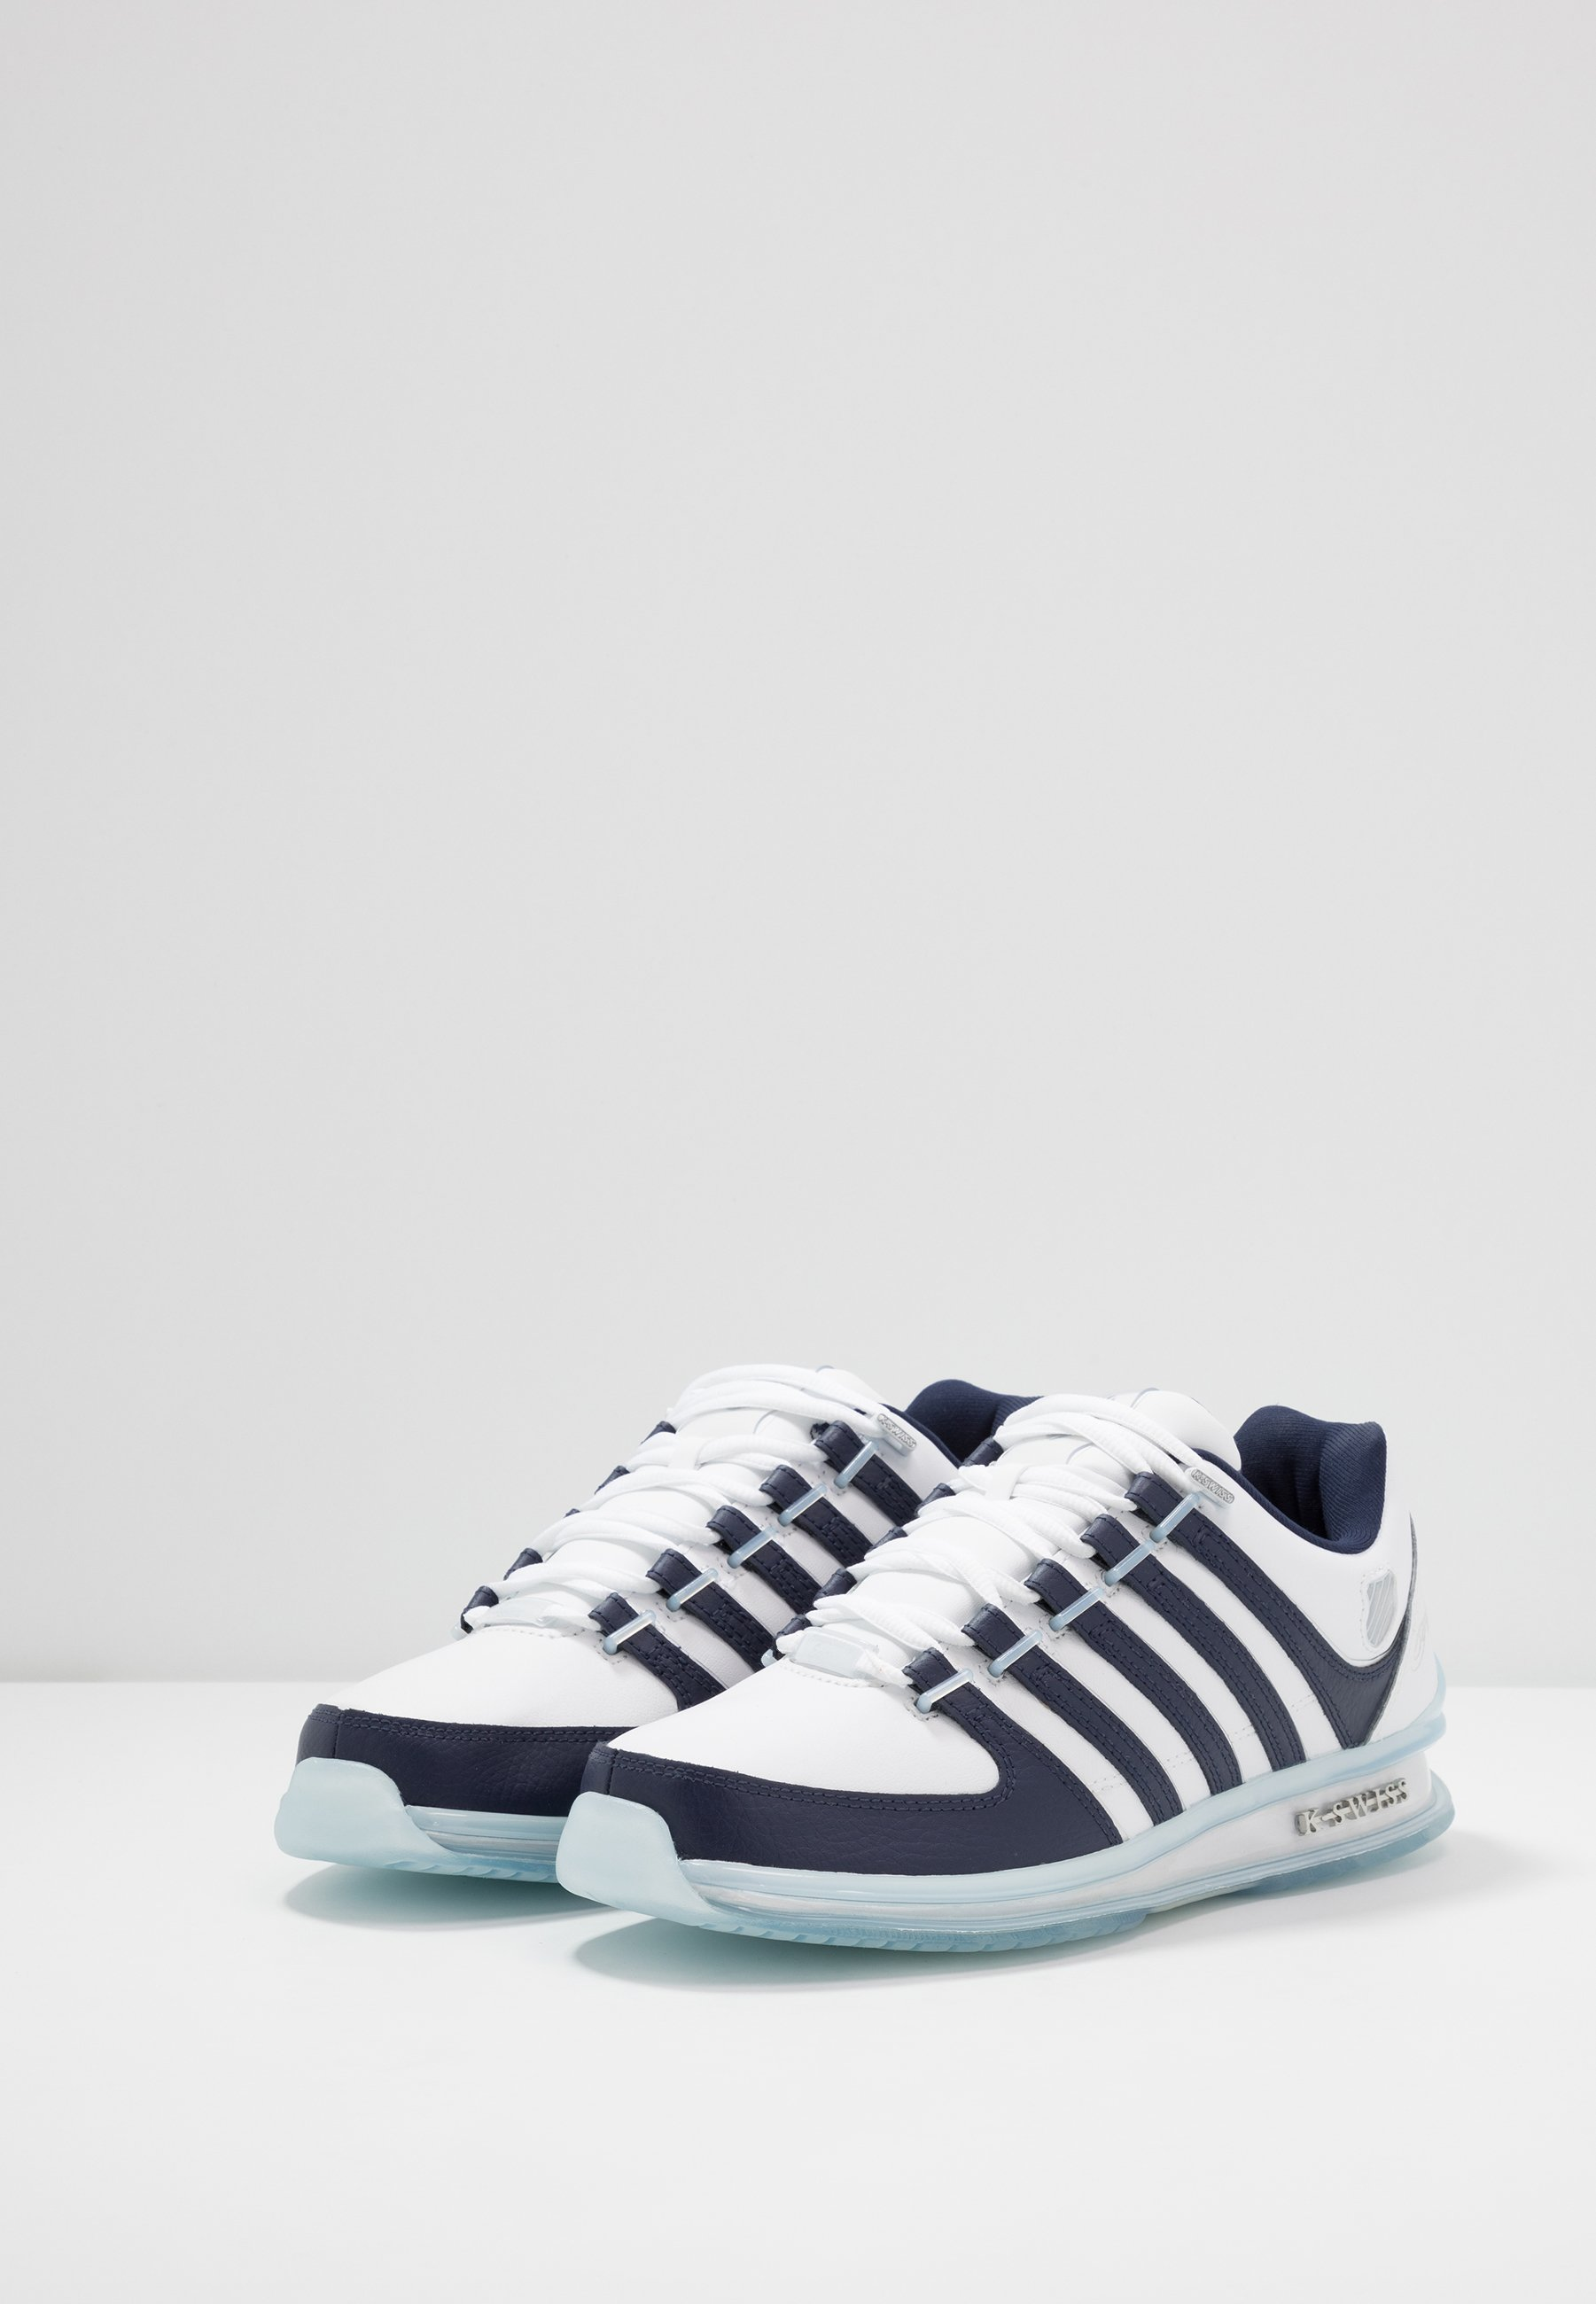 K-swiss Rinzler 15 Yrs - Sneakers Laag White/navy/crystal Clear